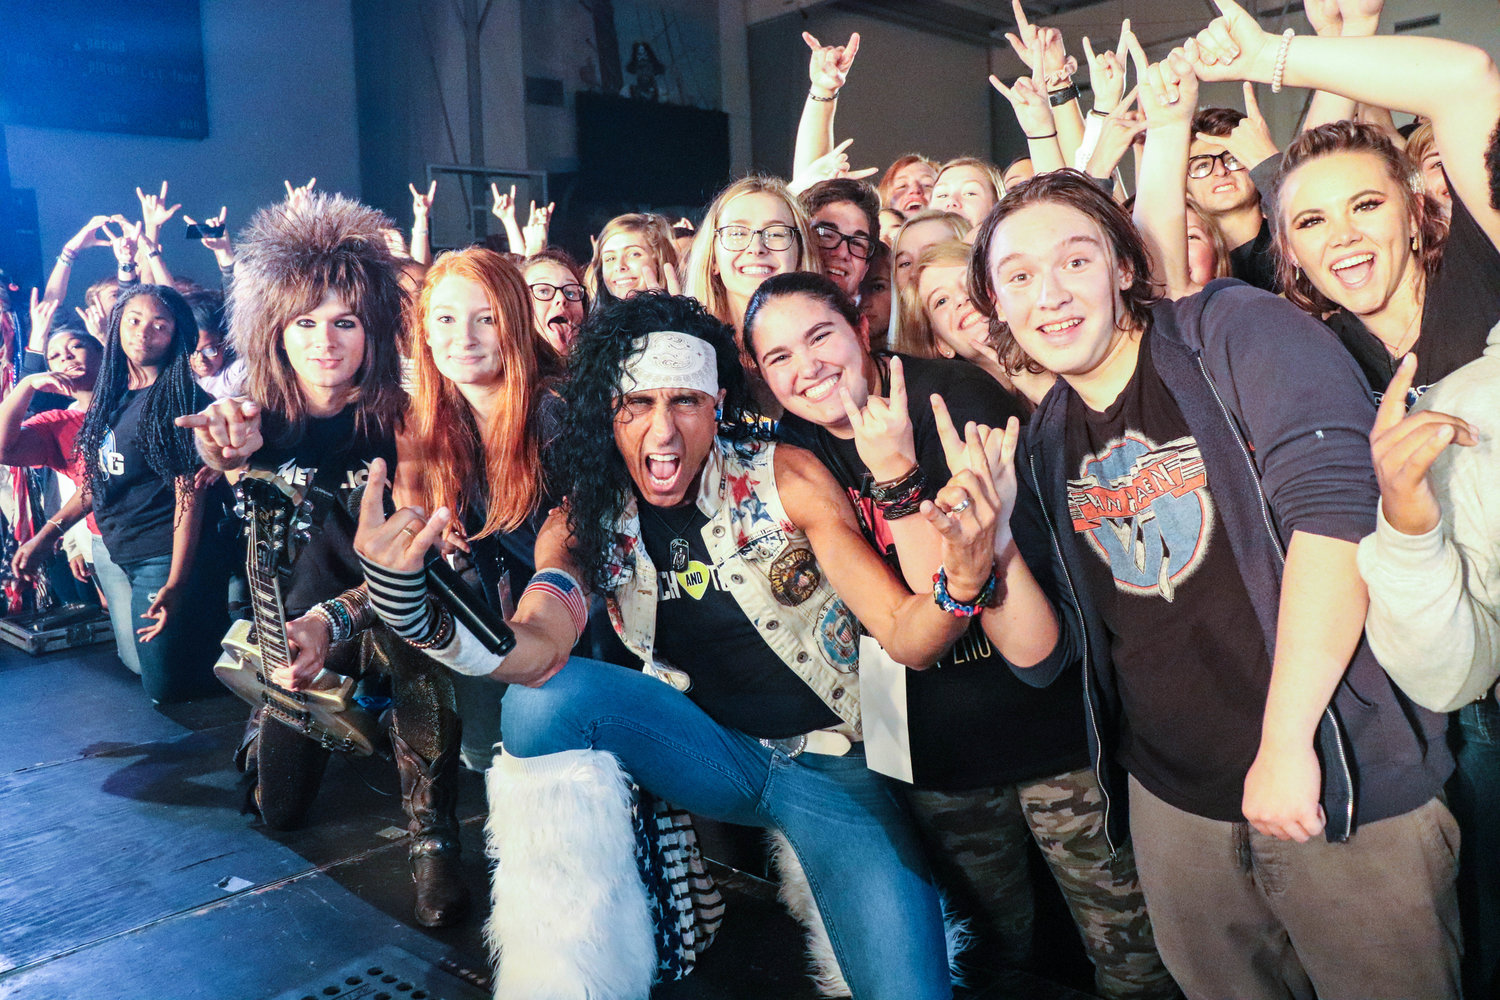 Members of the Velcro Pygmies pose with students during the show.